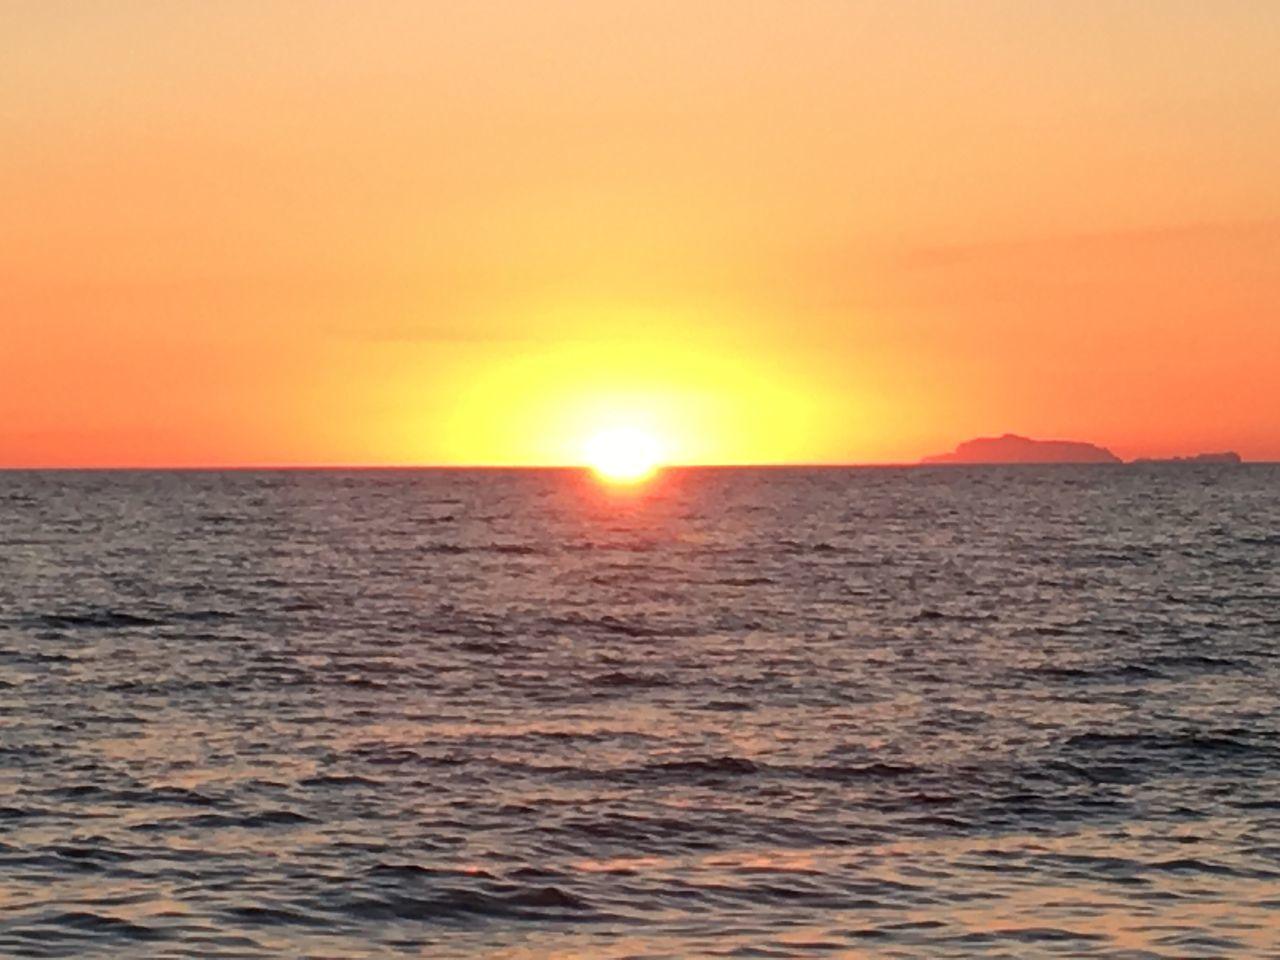 sunset, sea, sun, scenics, beauty in nature, nature, orange color, tranquility, tranquil scene, idyllic, horizon over water, no people, outdoors, sunlight, water, sky, rippled, silhouette, clear sky, wave, day